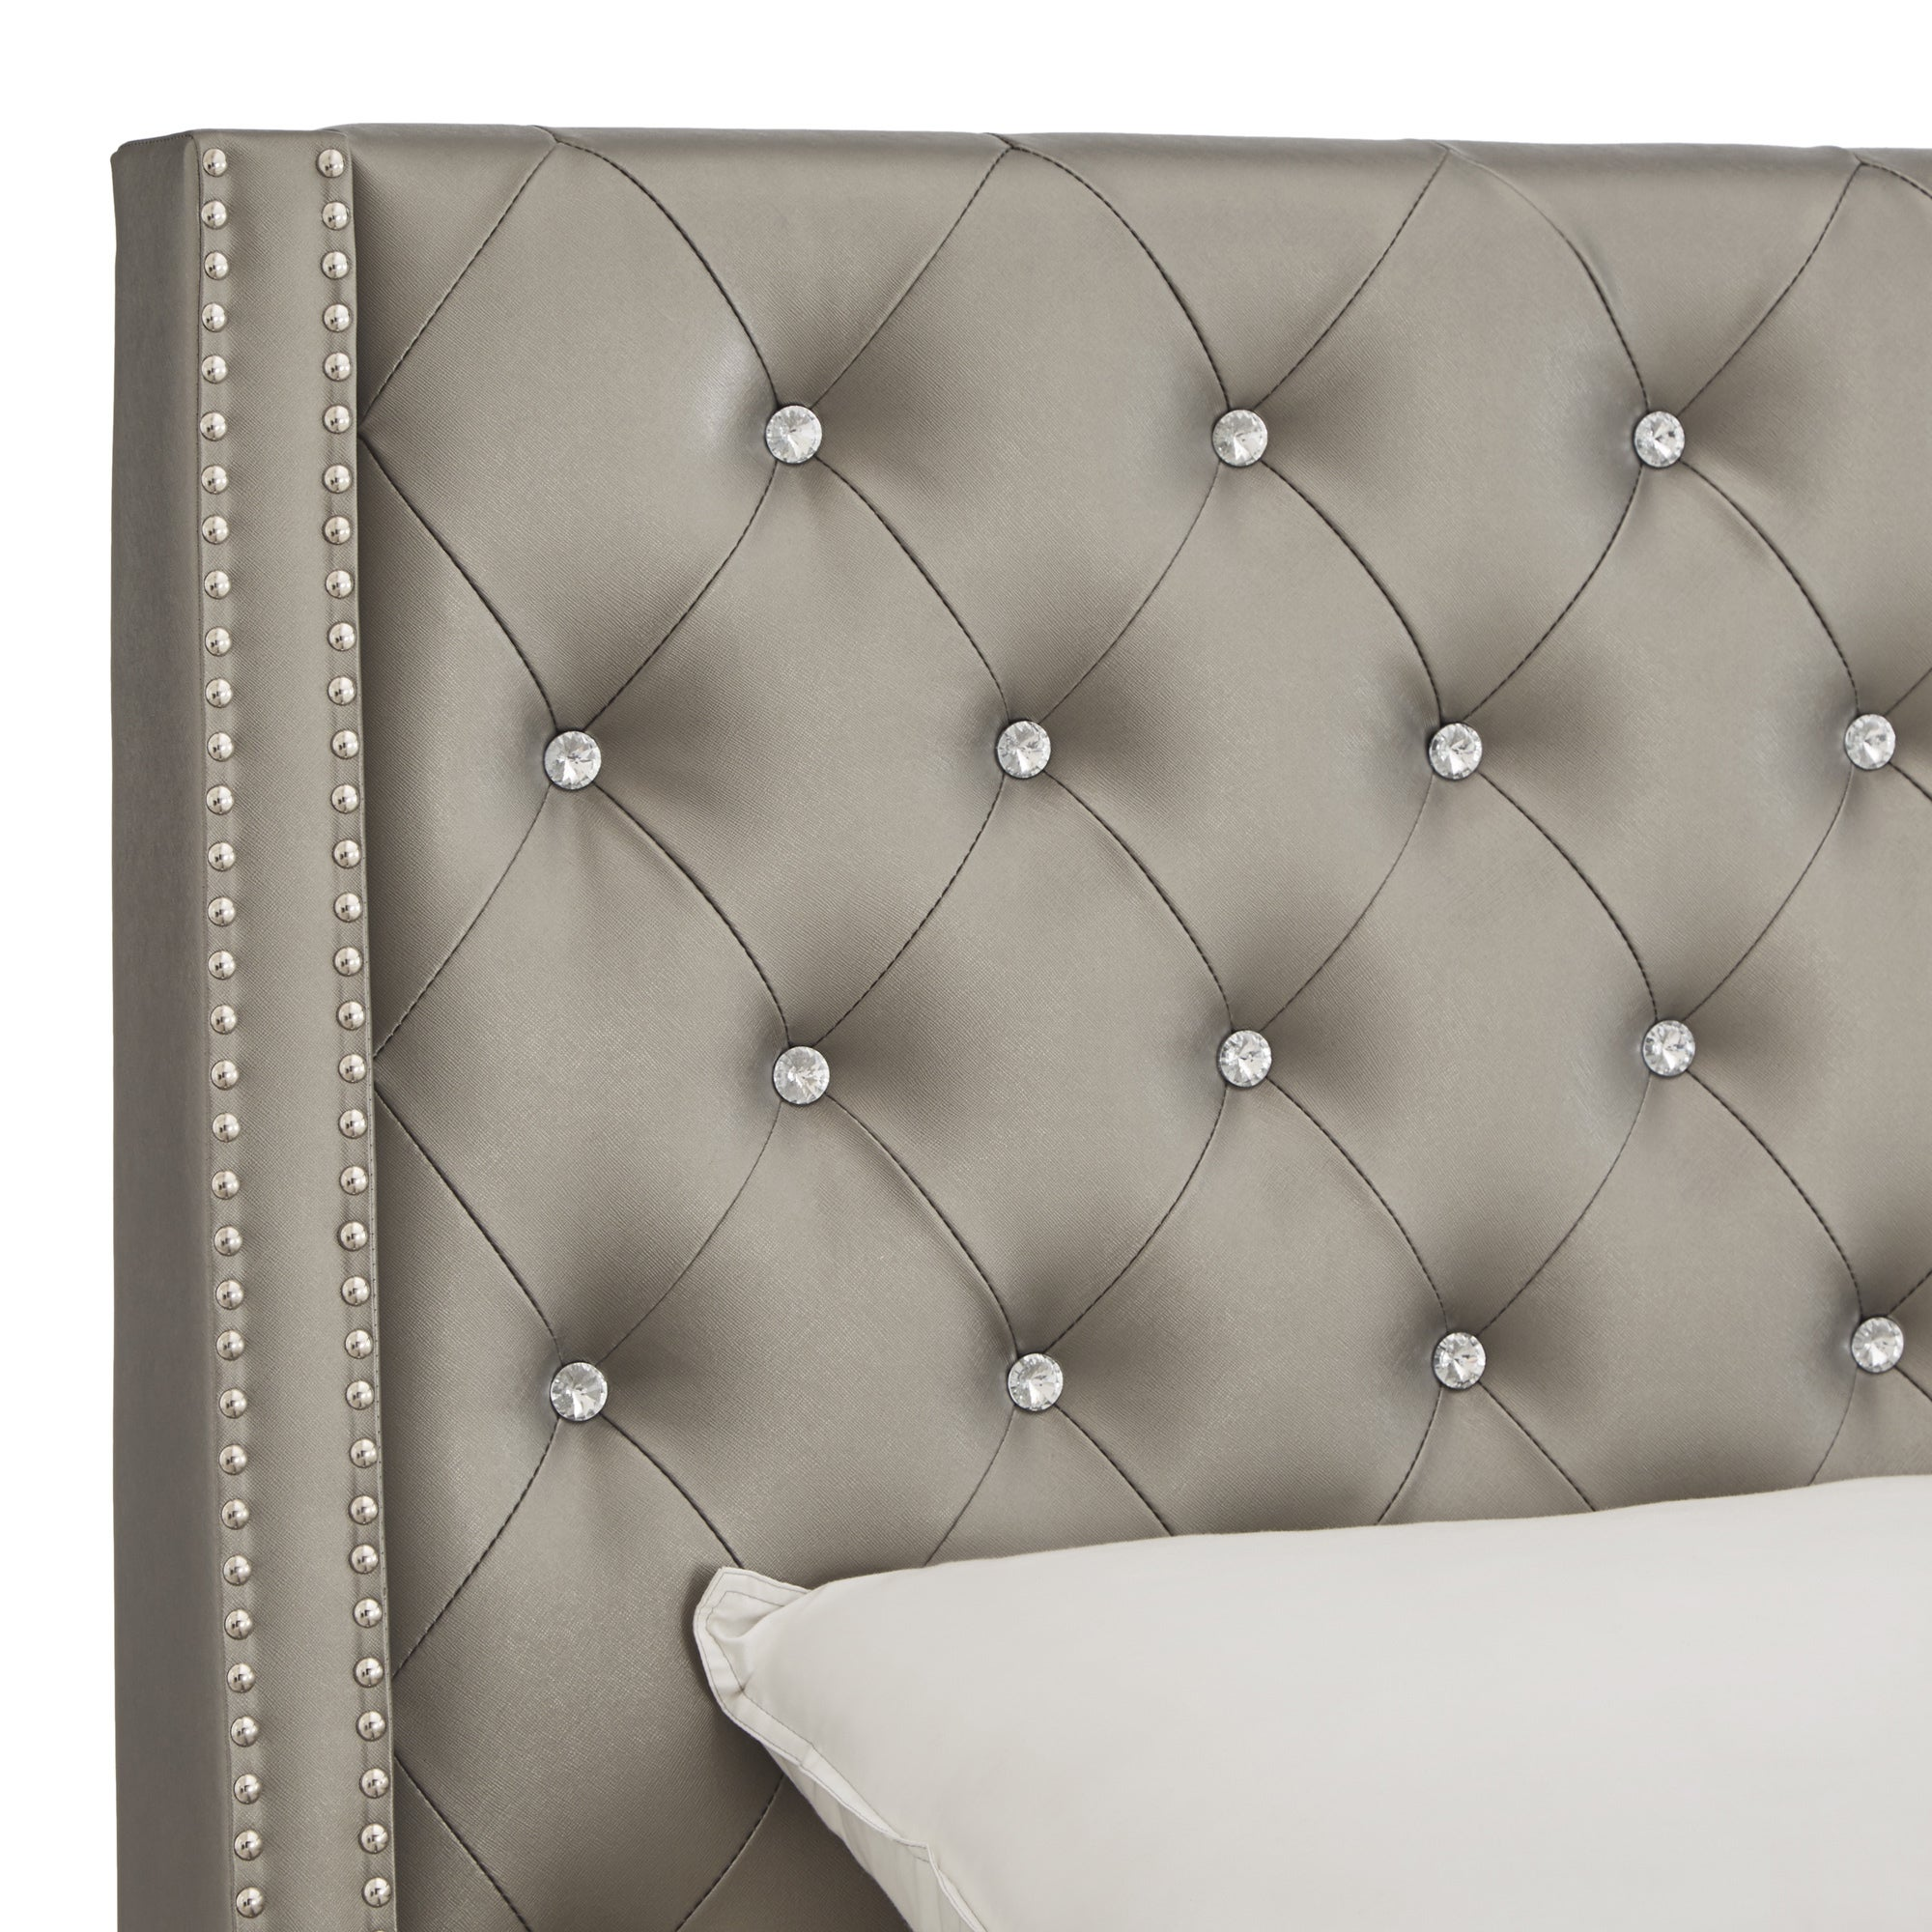 bed headboard picture sleek velvet padded in with upholstered wood double brilliant on uncategorized of grandpa frames head sale no tufted gray headboards and full white furniture painted retro large king mahogany wooden for size beds fantastic frame grey fabric leather